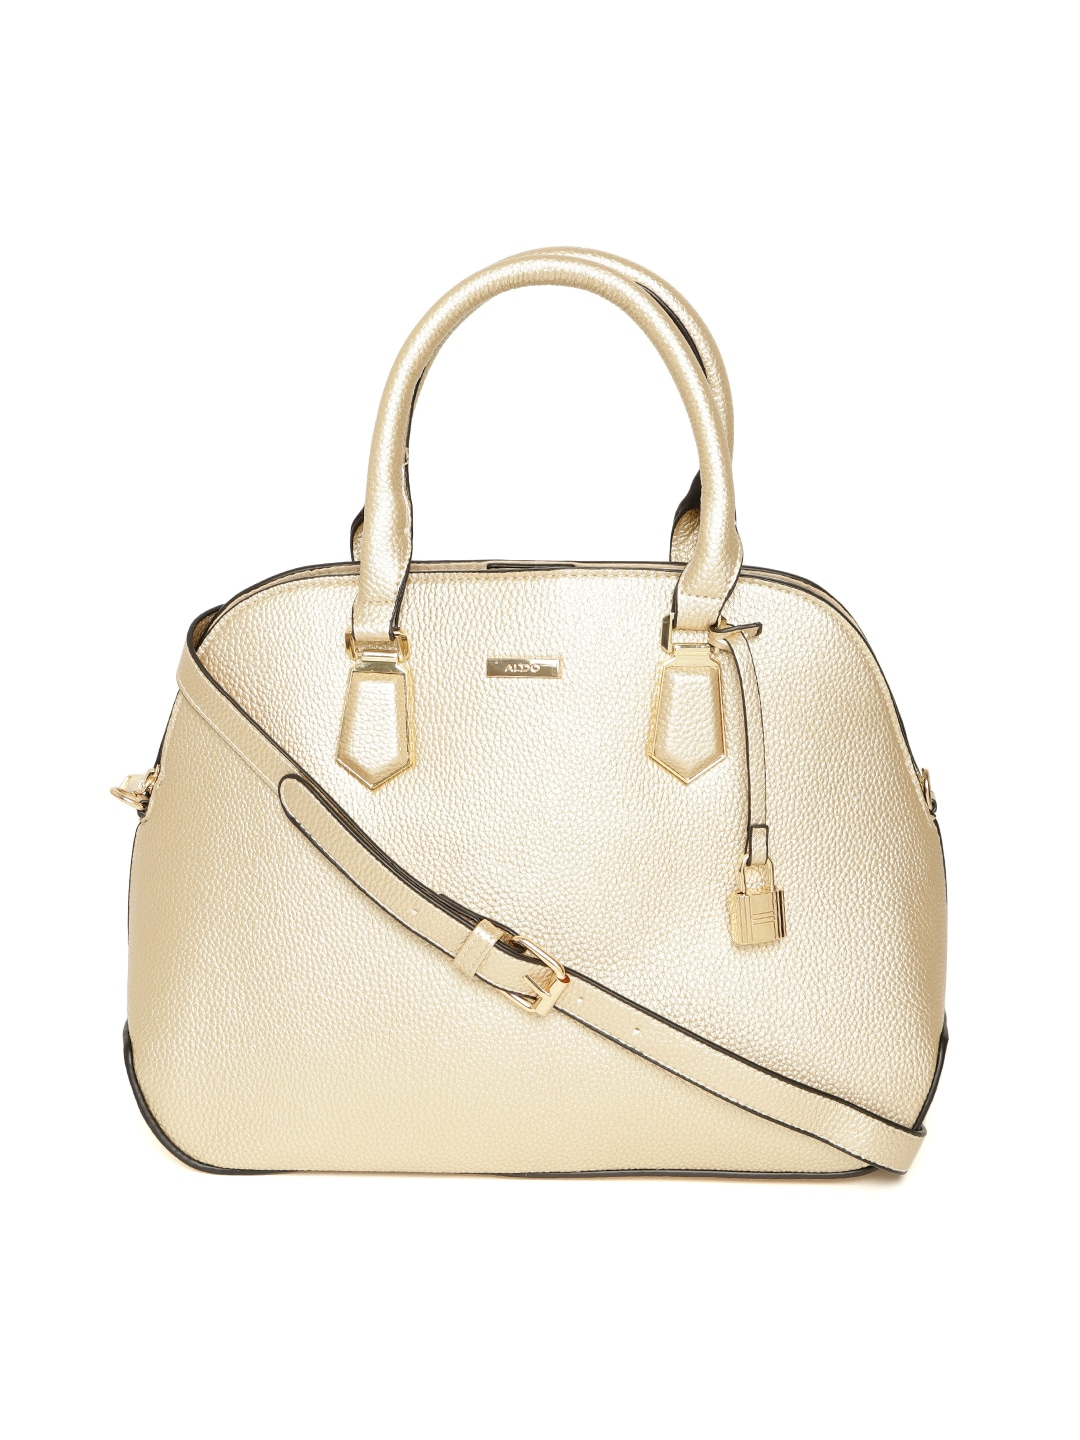 2a8f2b3ee20 Aldo Bags - Buy Aldo Bags online in India